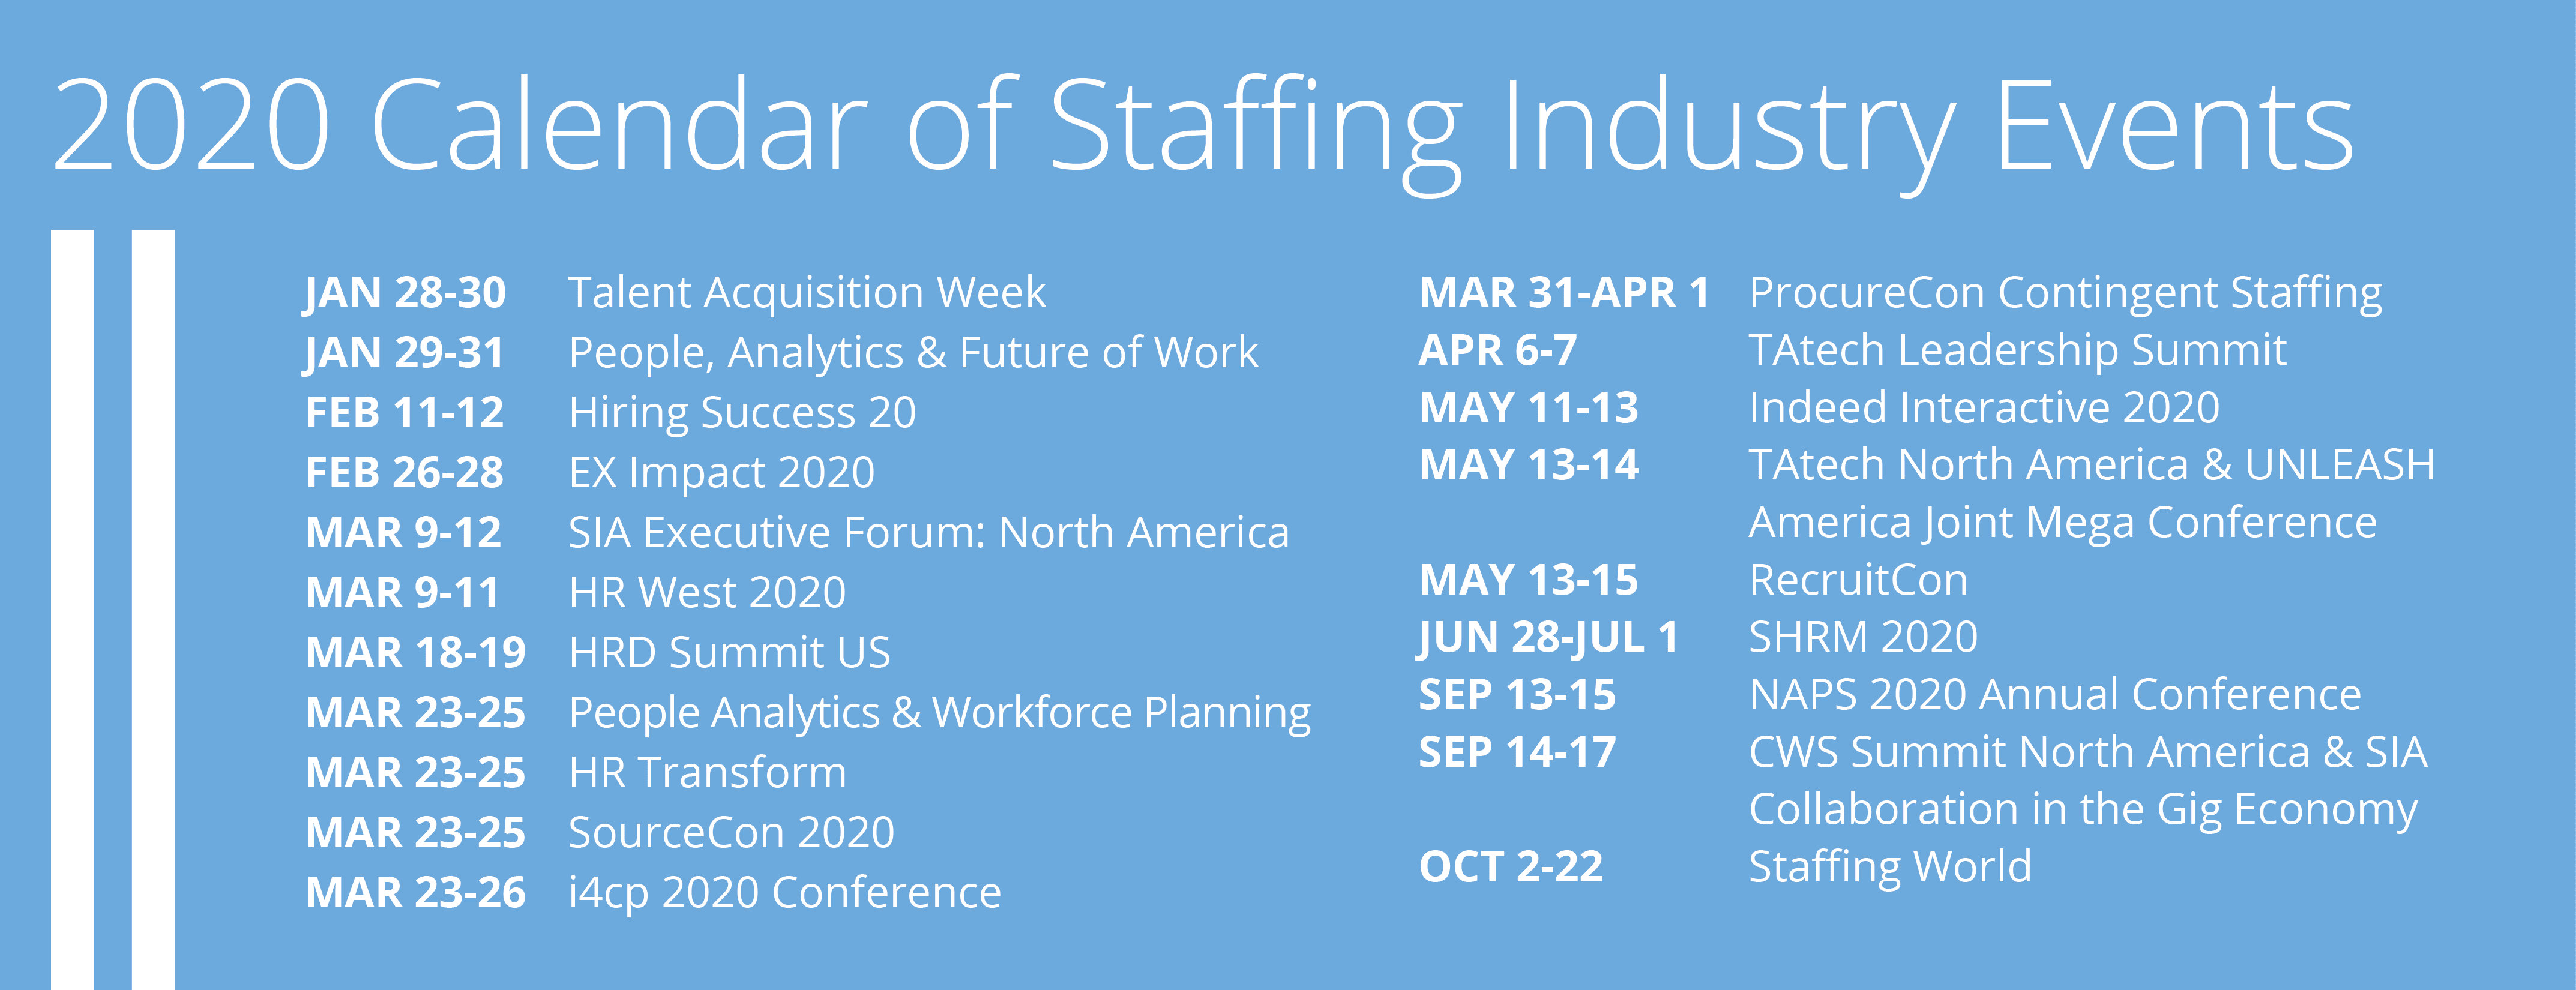 Image for 2020 Guide to Staffing Industry Events